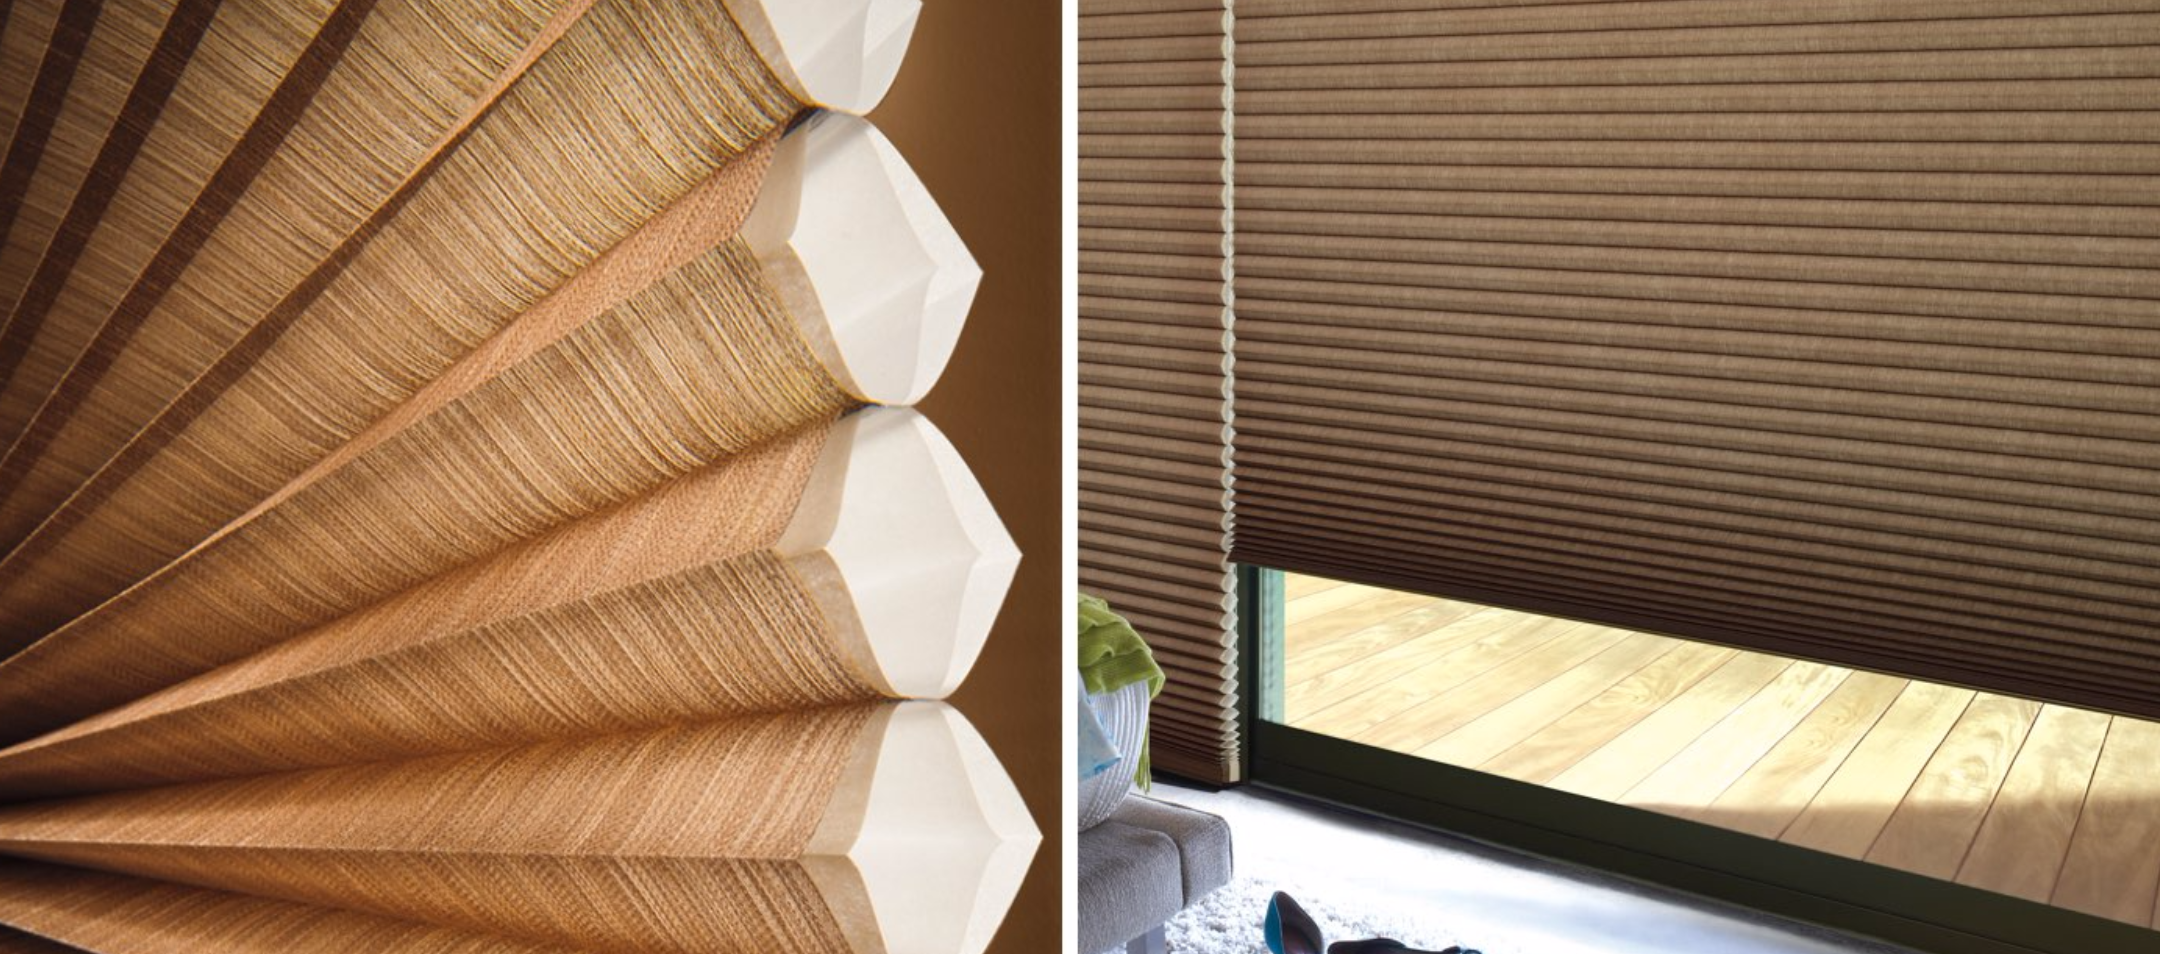 Duette - Our Duette®and Duette Architella®honeycomb shades keep your home warm in the winter and cool in the summer. An array of fabrics and a Vertiglide™option for large windows and sliding doors make it the top-selling product in the industry.